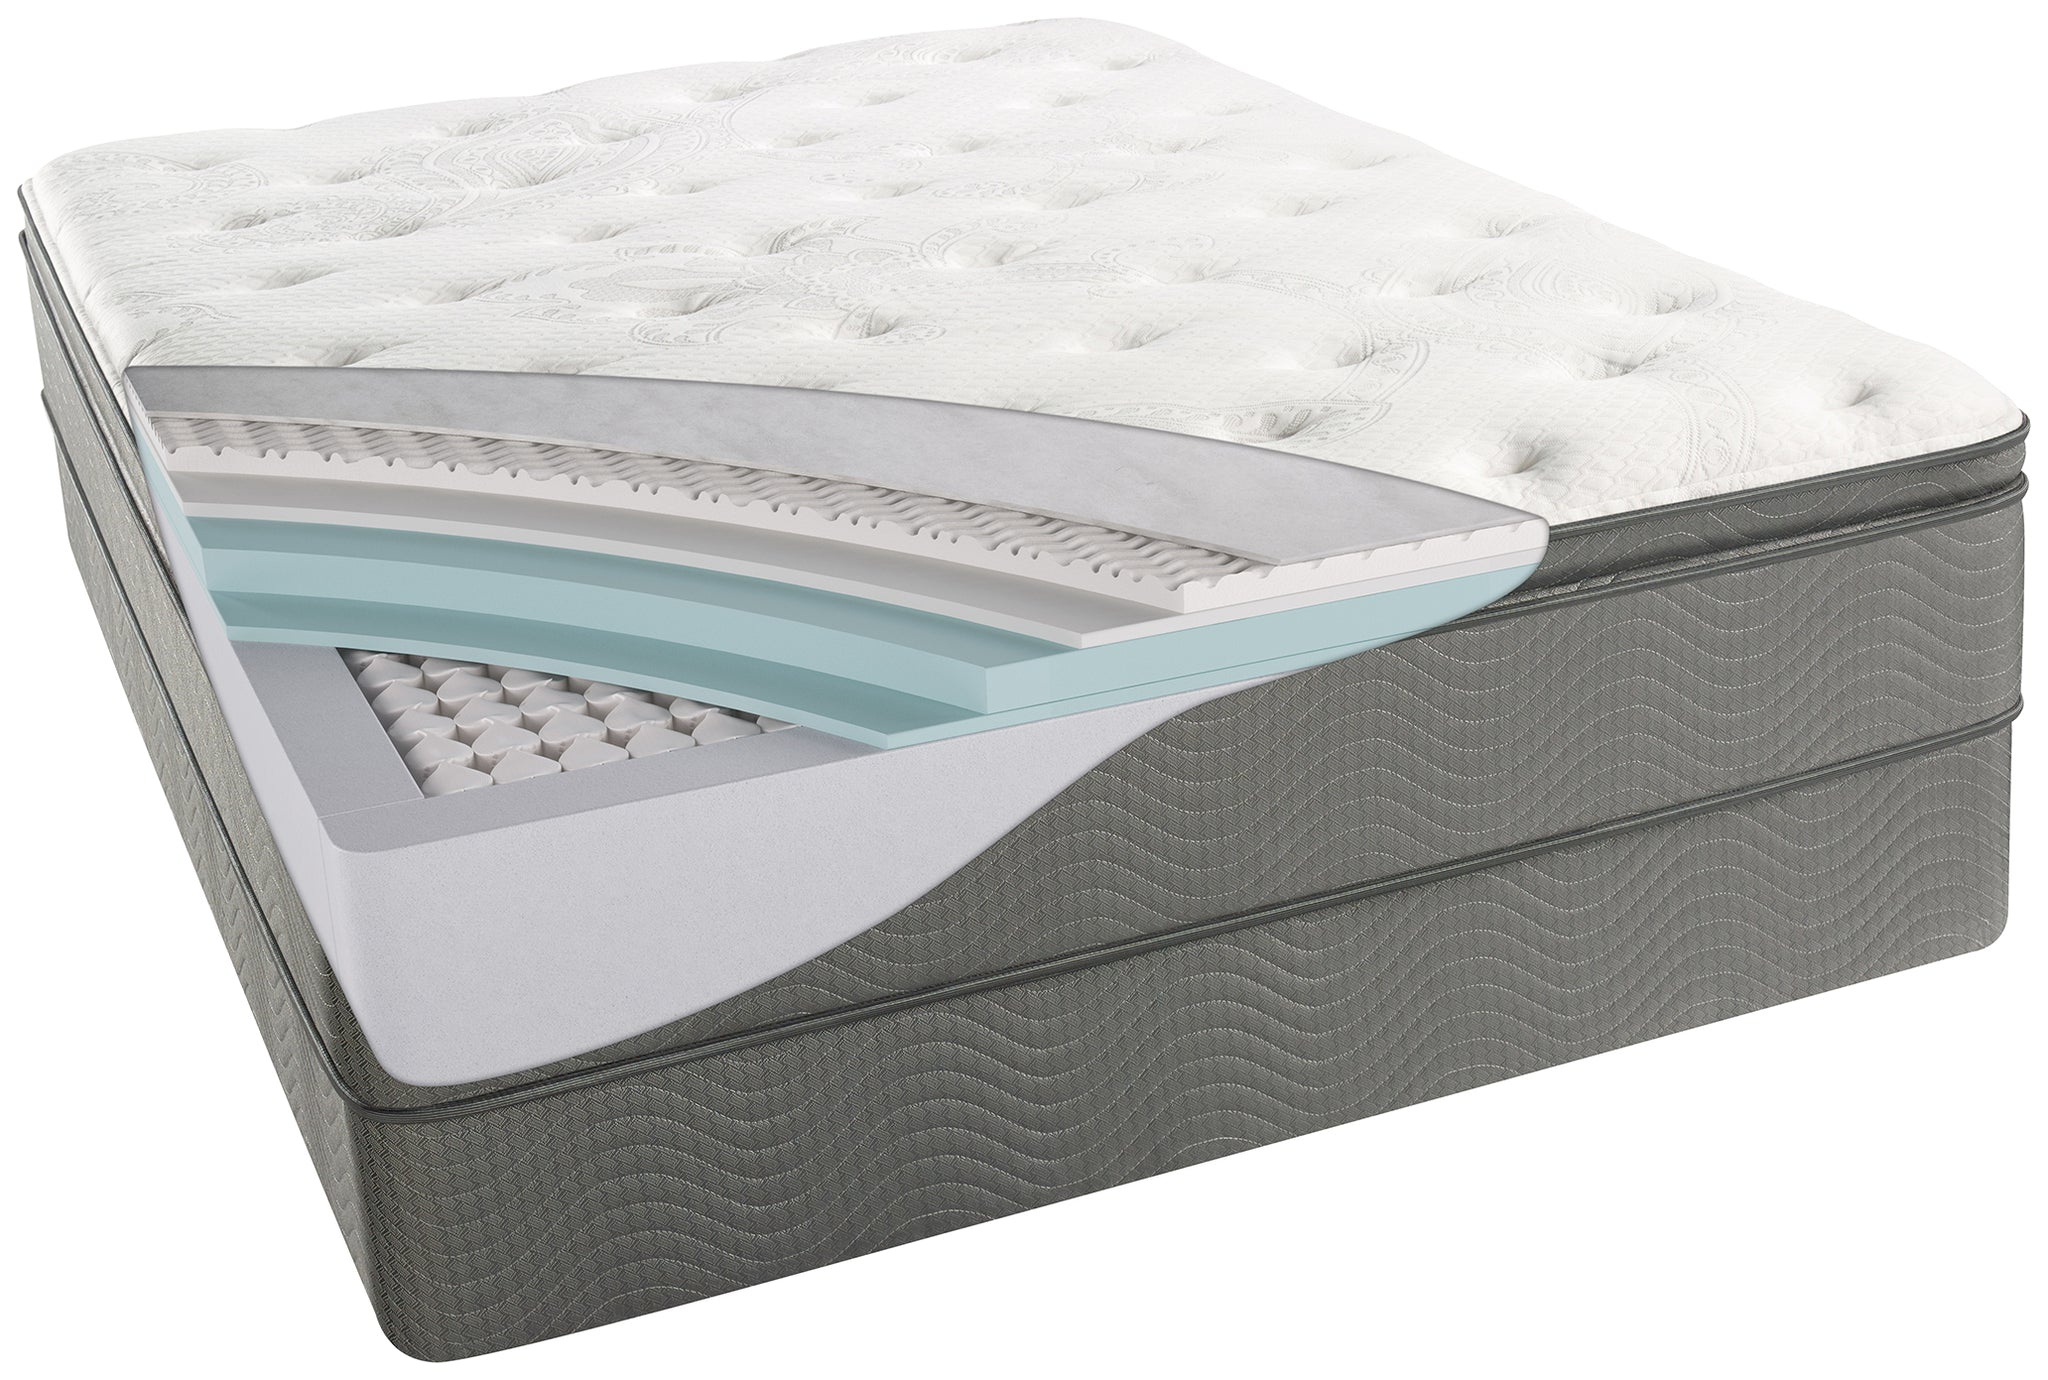 and queen pad quilted com tite sleep malouf damask home fill down cover dp mattress pillow amazon bel alternative topper with kitchen